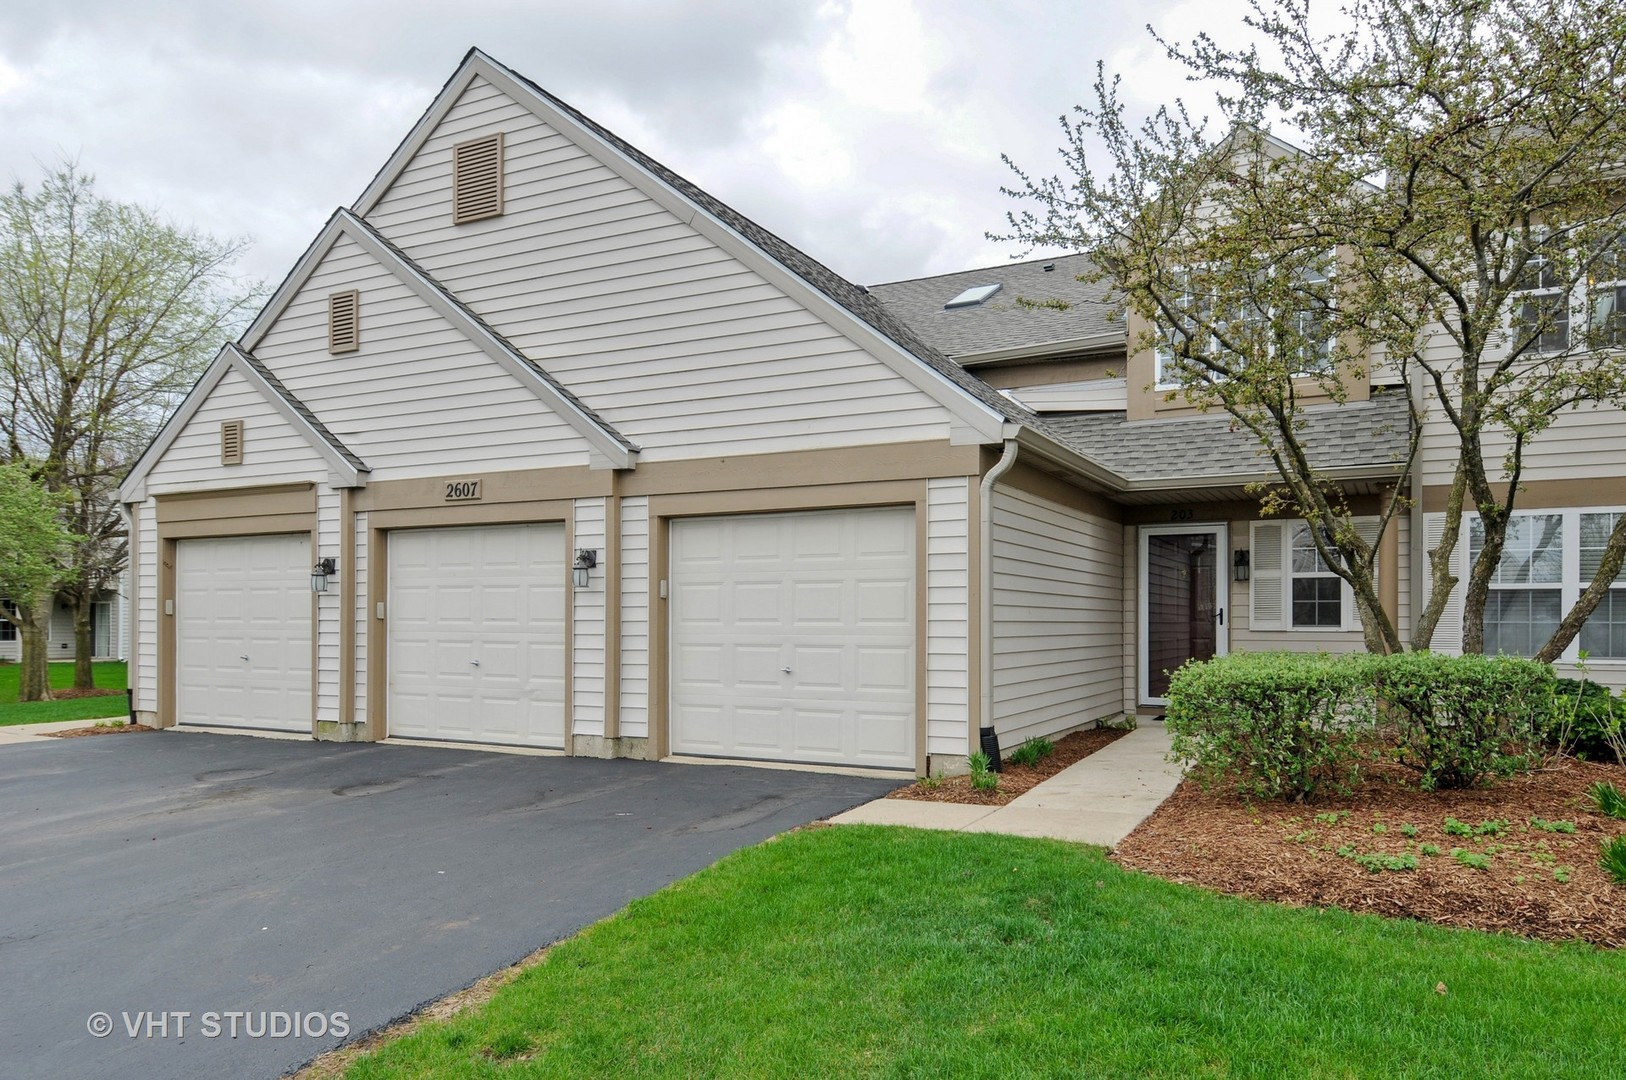 ... 2607 Sheehan Court, #203, Naperville, IL 60564 ...